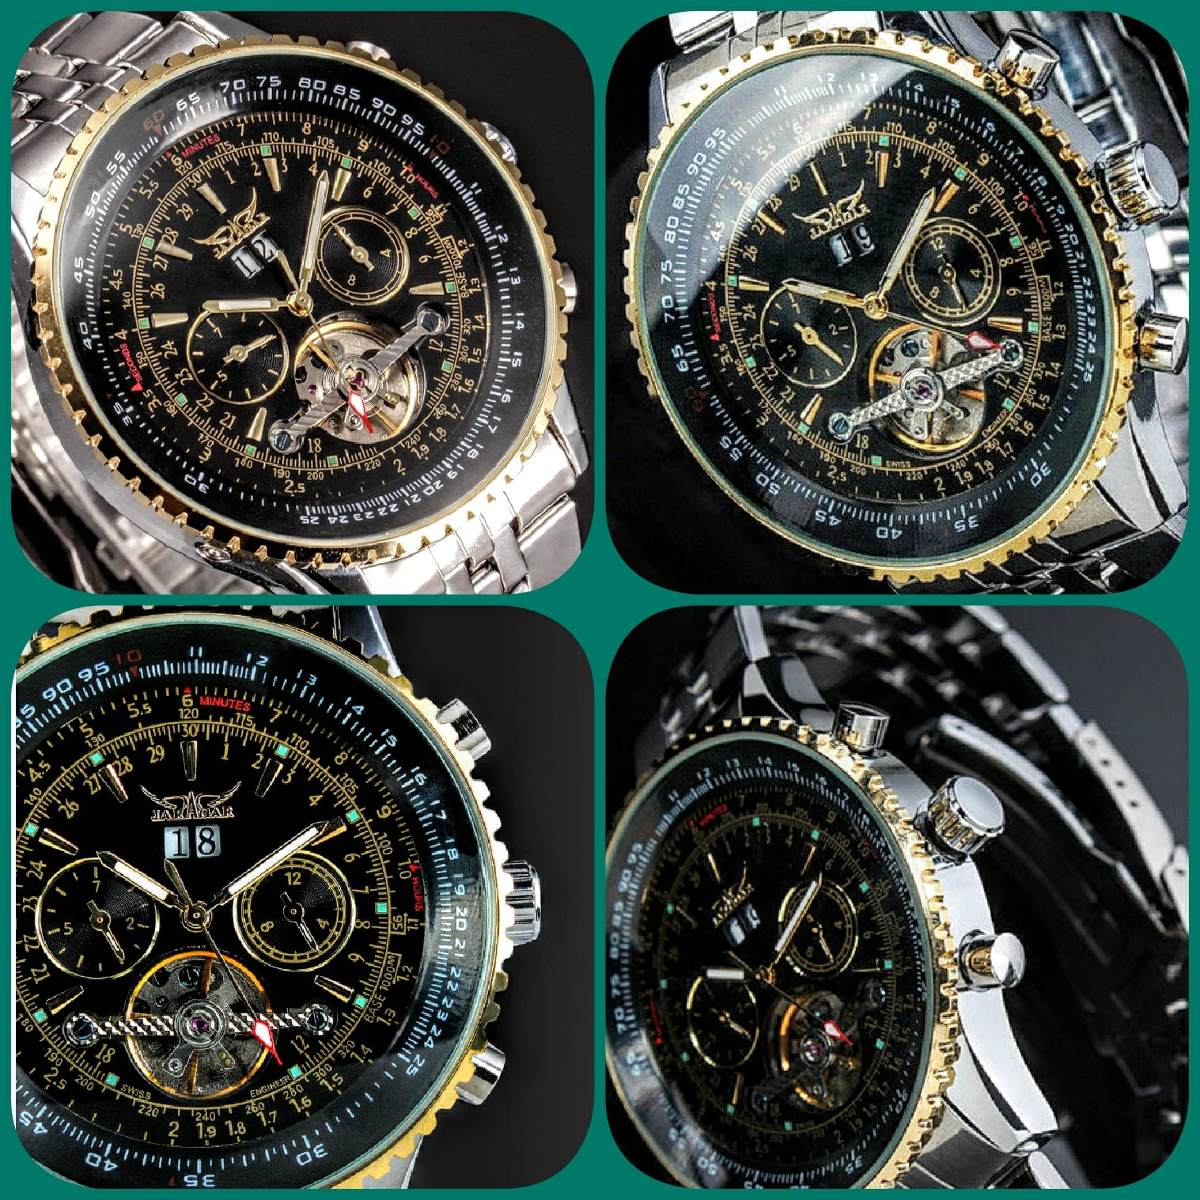 cd3c0be5898 Relógio Jaragar Tourbillon Luxury Pronta Entrega - R  240